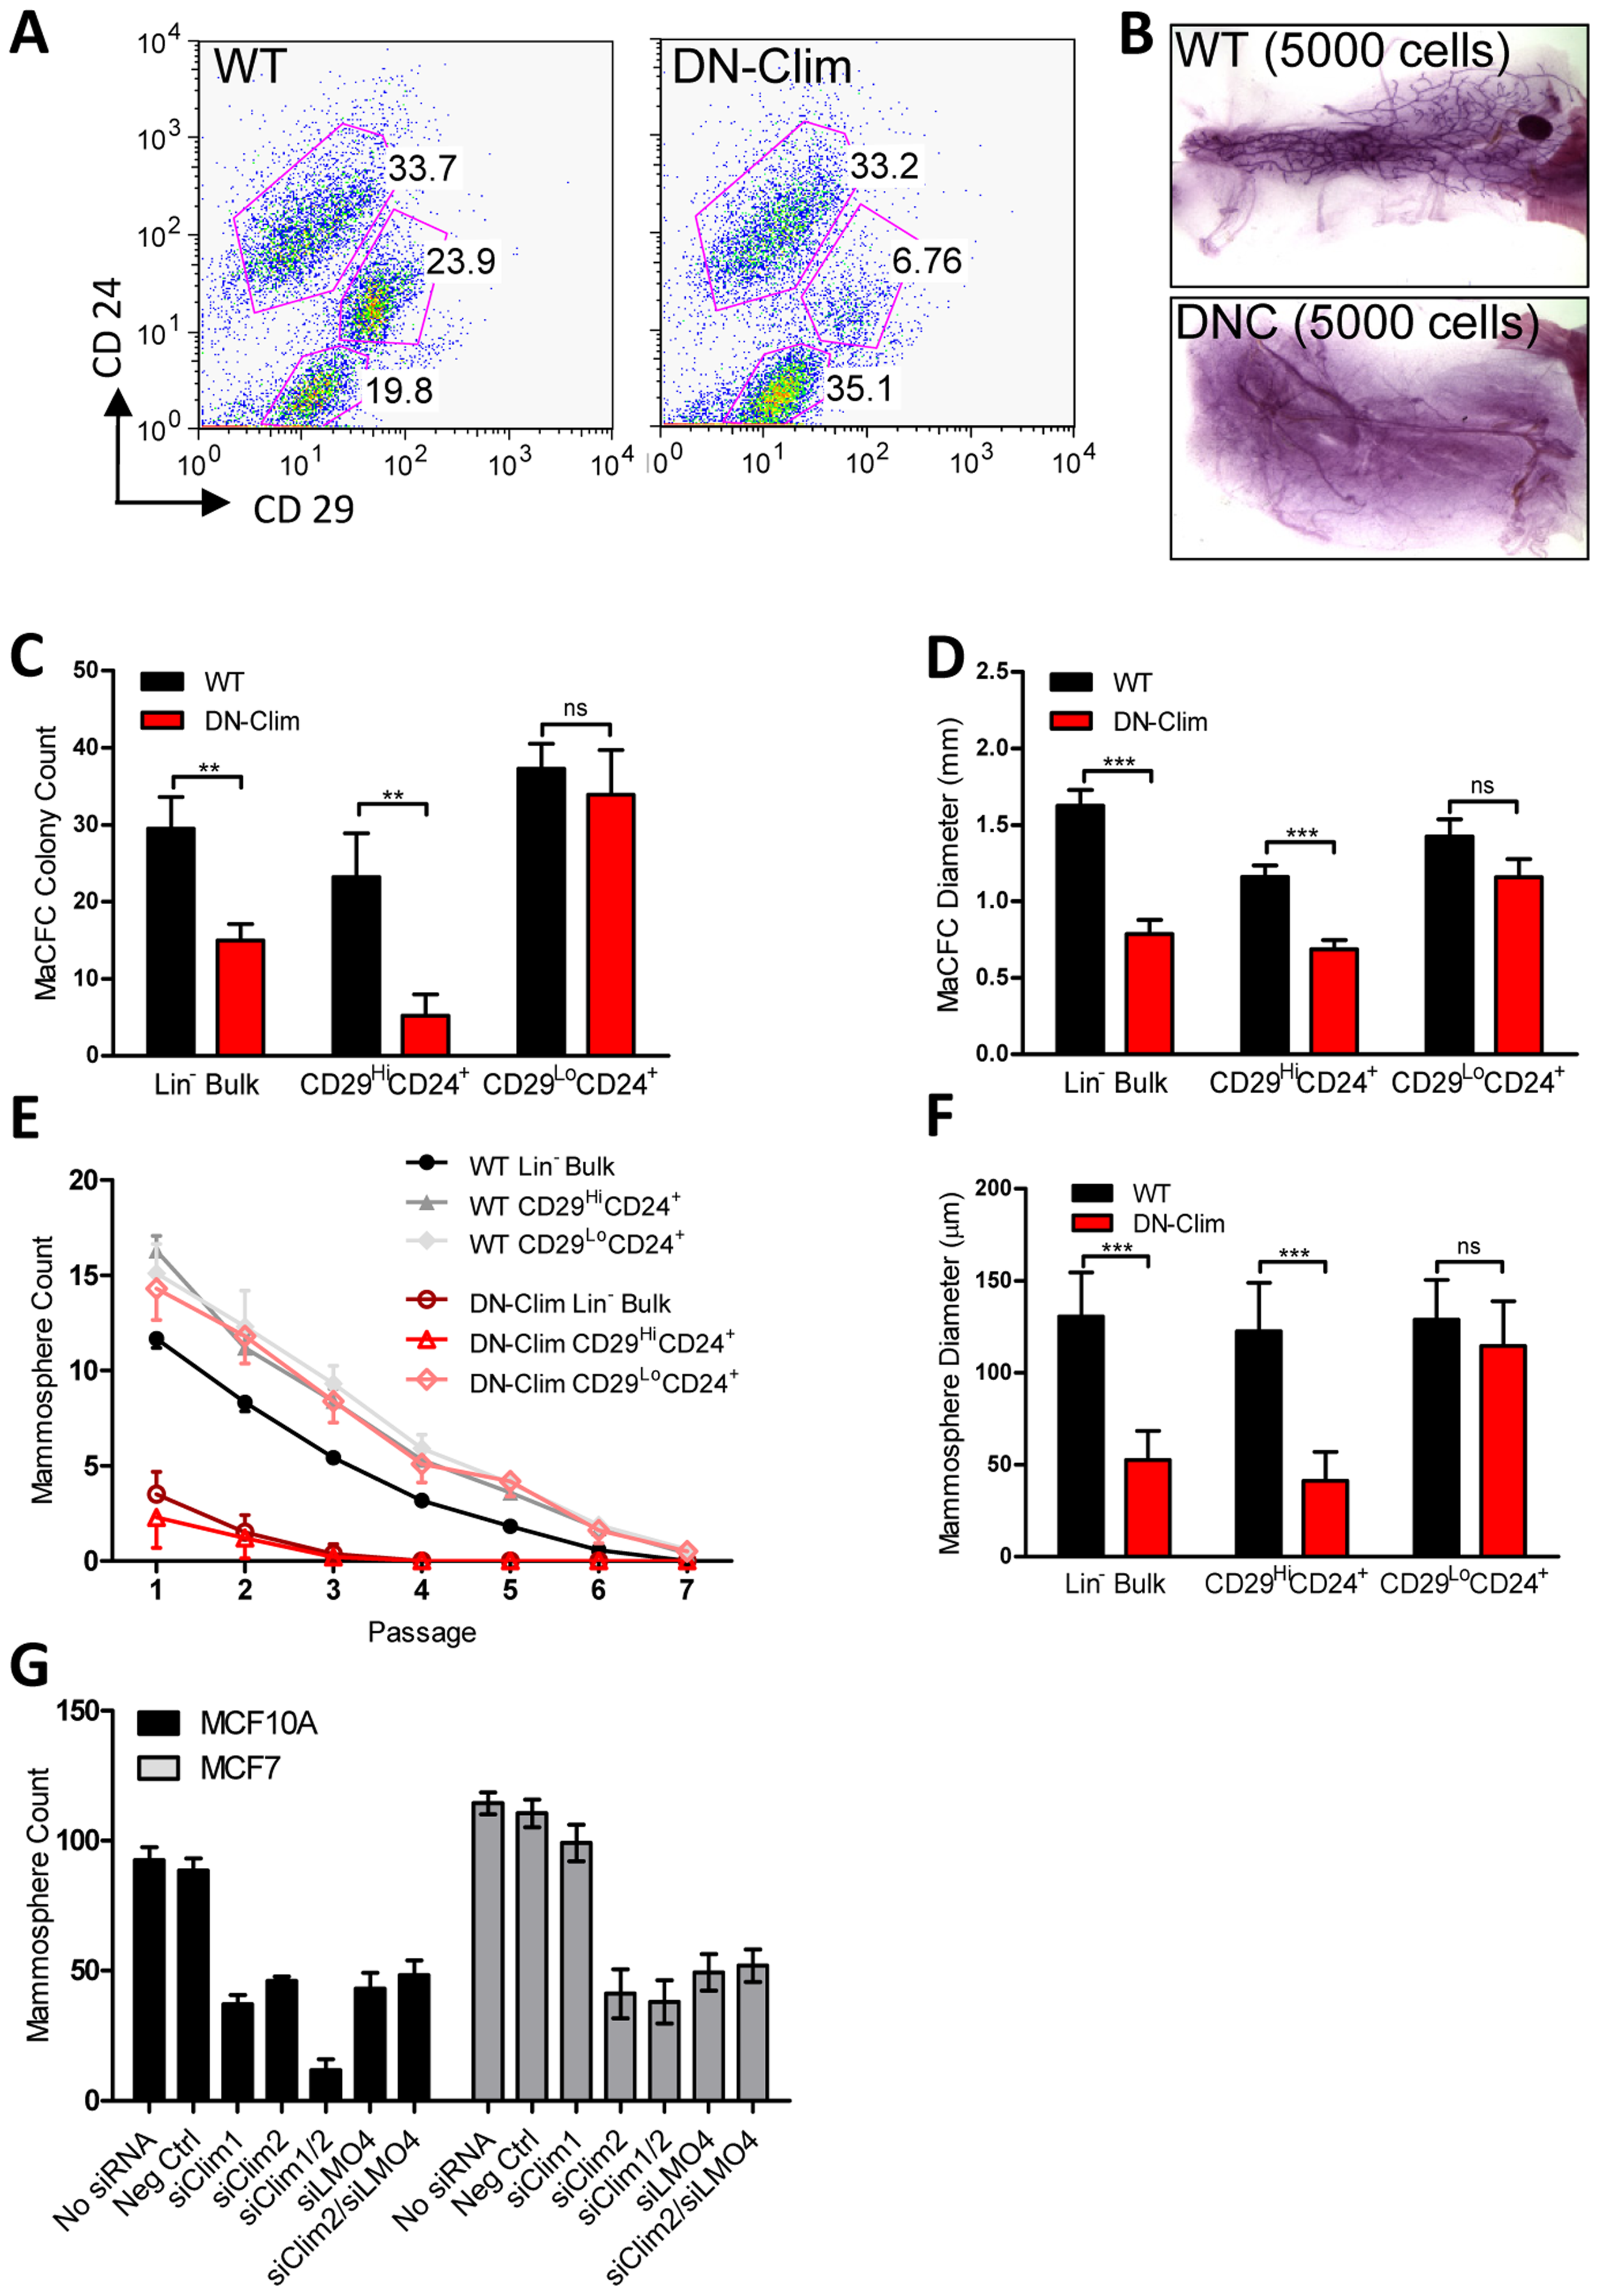 Clims maintain basal mammary epithelial stem cells.